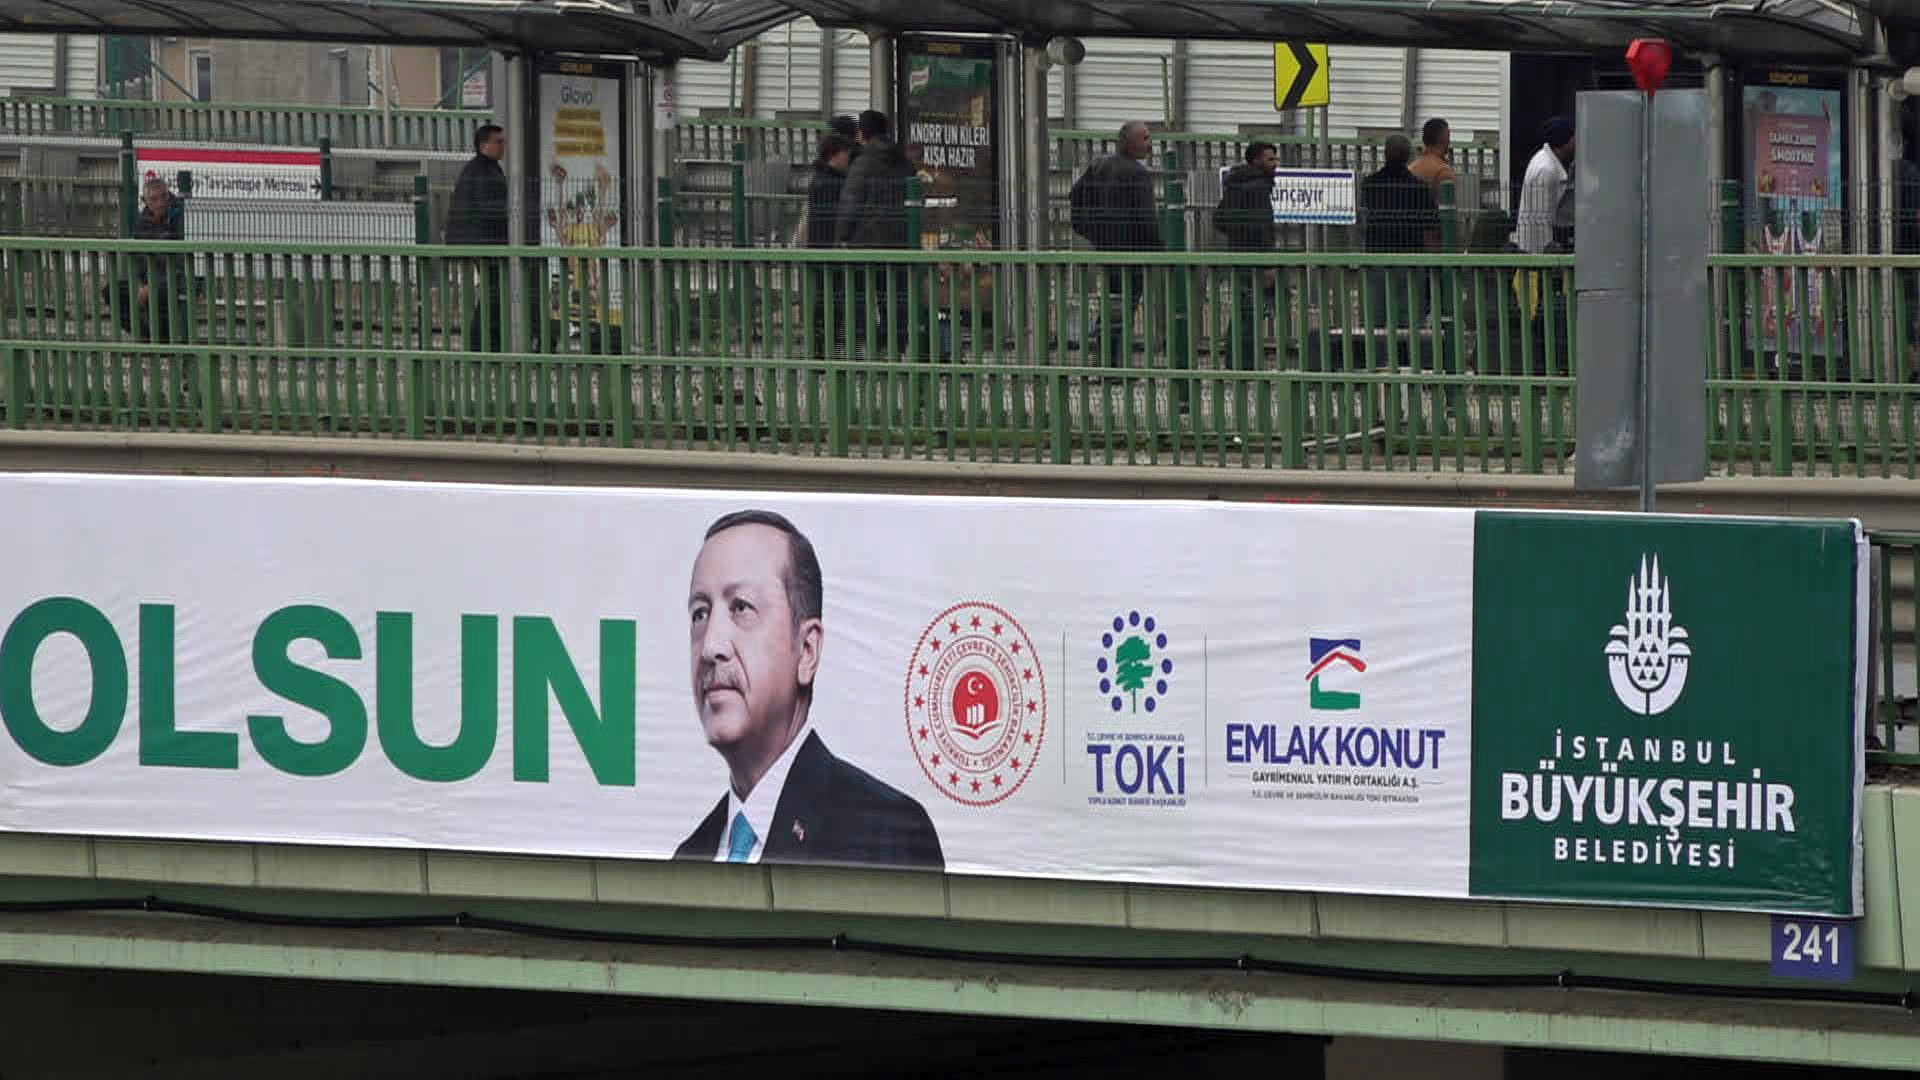 The construction boom has been the engine for economic prosperity and electoral success for President President Recep Tayyip Erdogan.